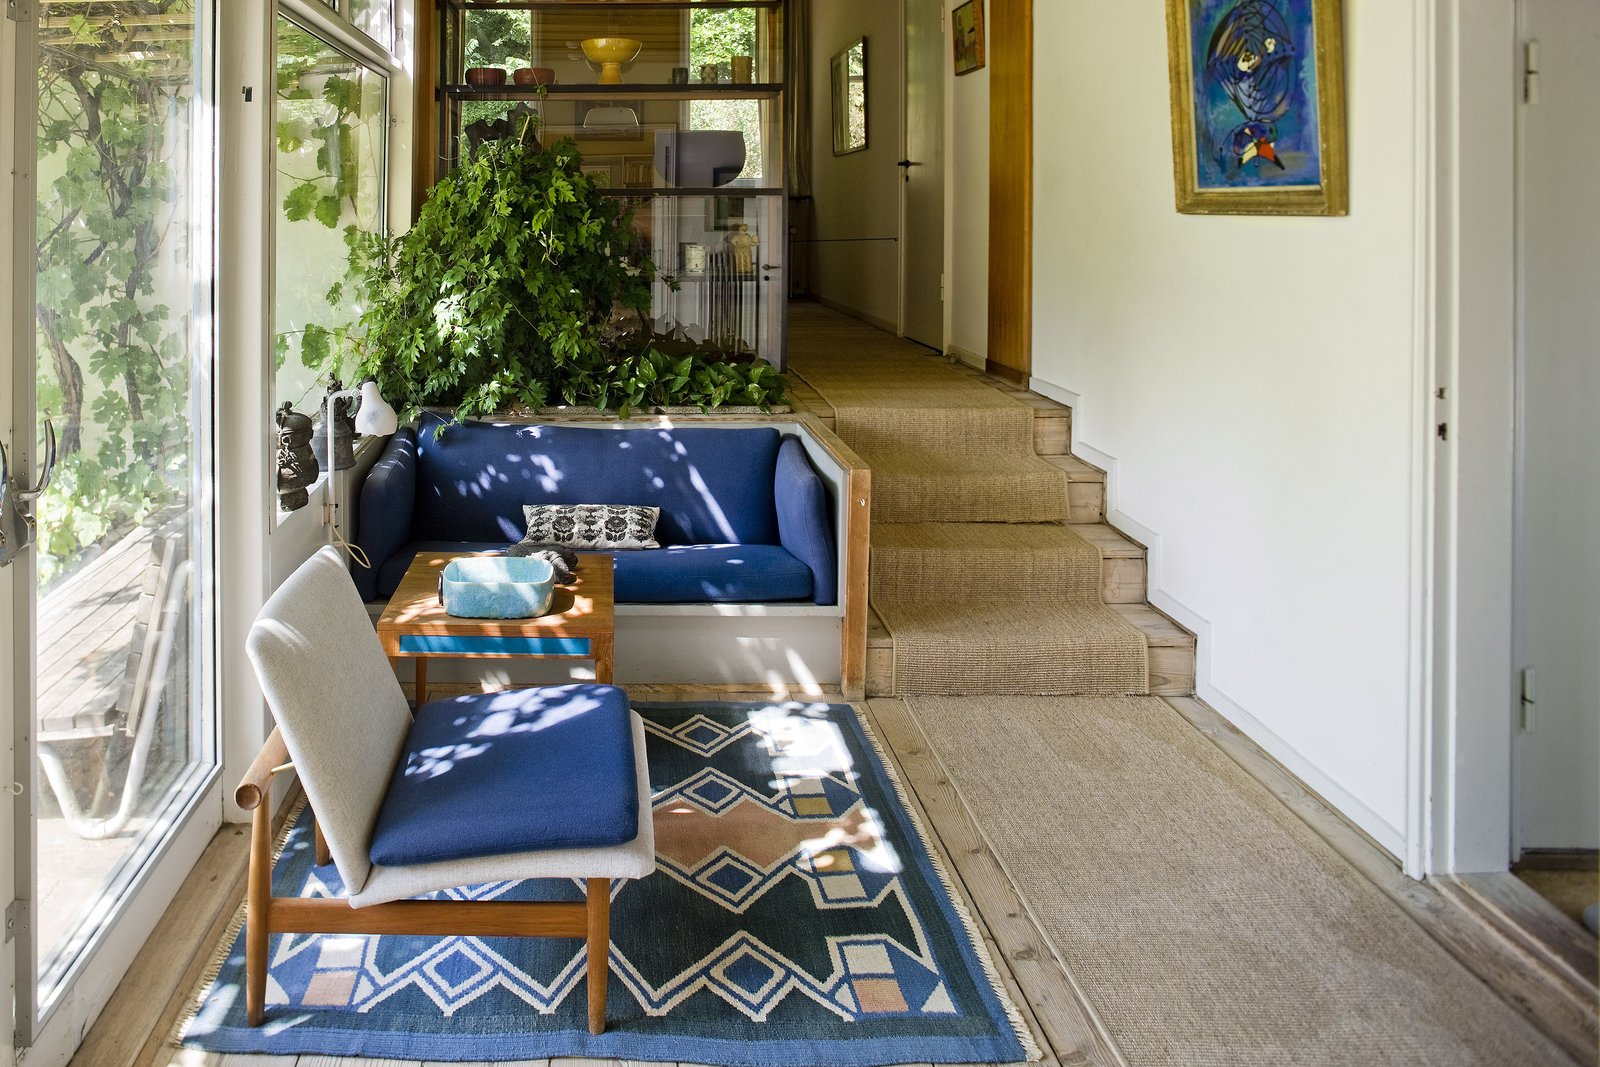 In the garden room, Juhl's 1957 Japanese chair lies next to a sofa table and a built-in bench, designed for the house. The blue upholstery matches Anna Thommsen's carpet. Tagged: Living Room, Sofa, Chair, and Rug Floor.  Photo 1 of 7 in The Highly Personal House of Danish Design Great Finn Juhl